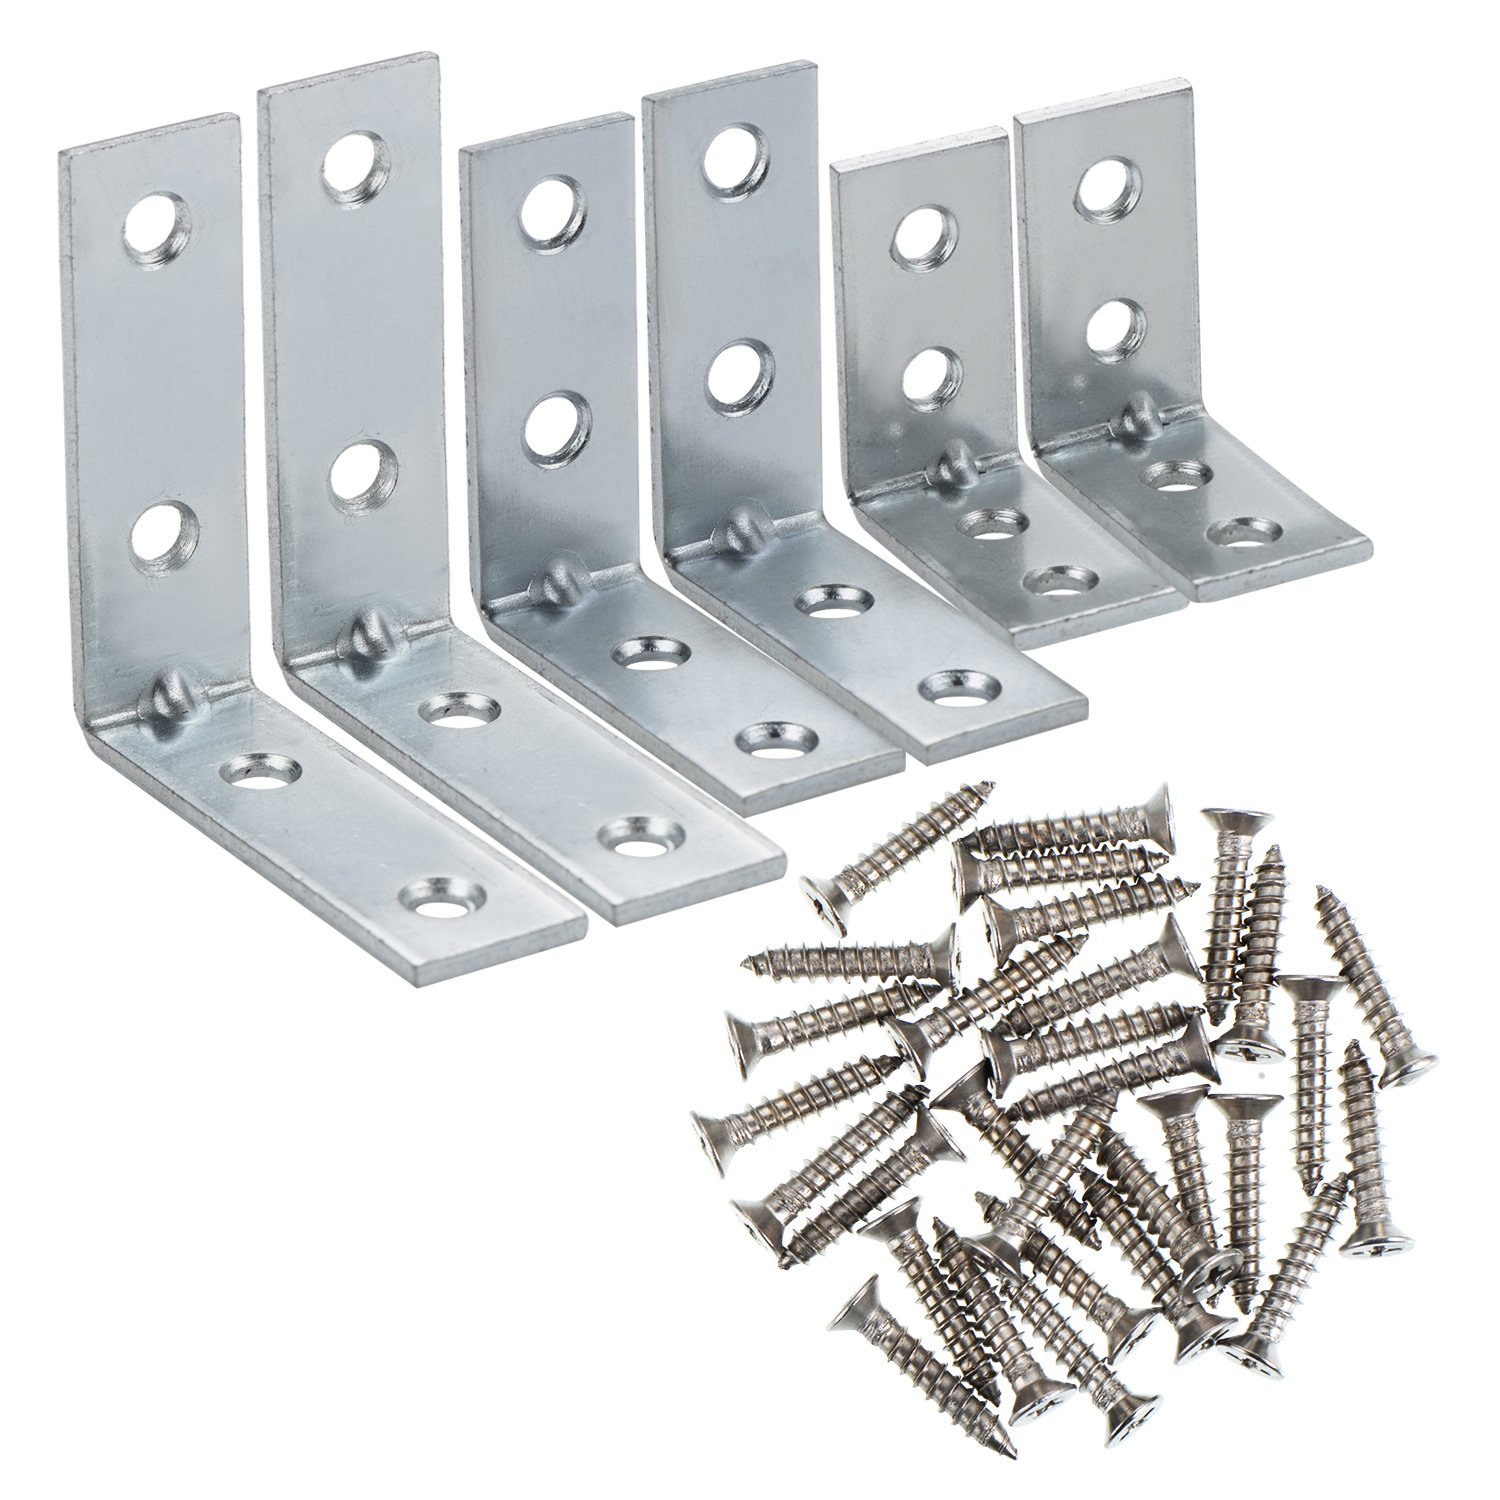 eBoot Corner Braces Angle Brackets 90 Degree Metal Corner Brackets Joint Bracket Fastener 3 Sizes with Screws